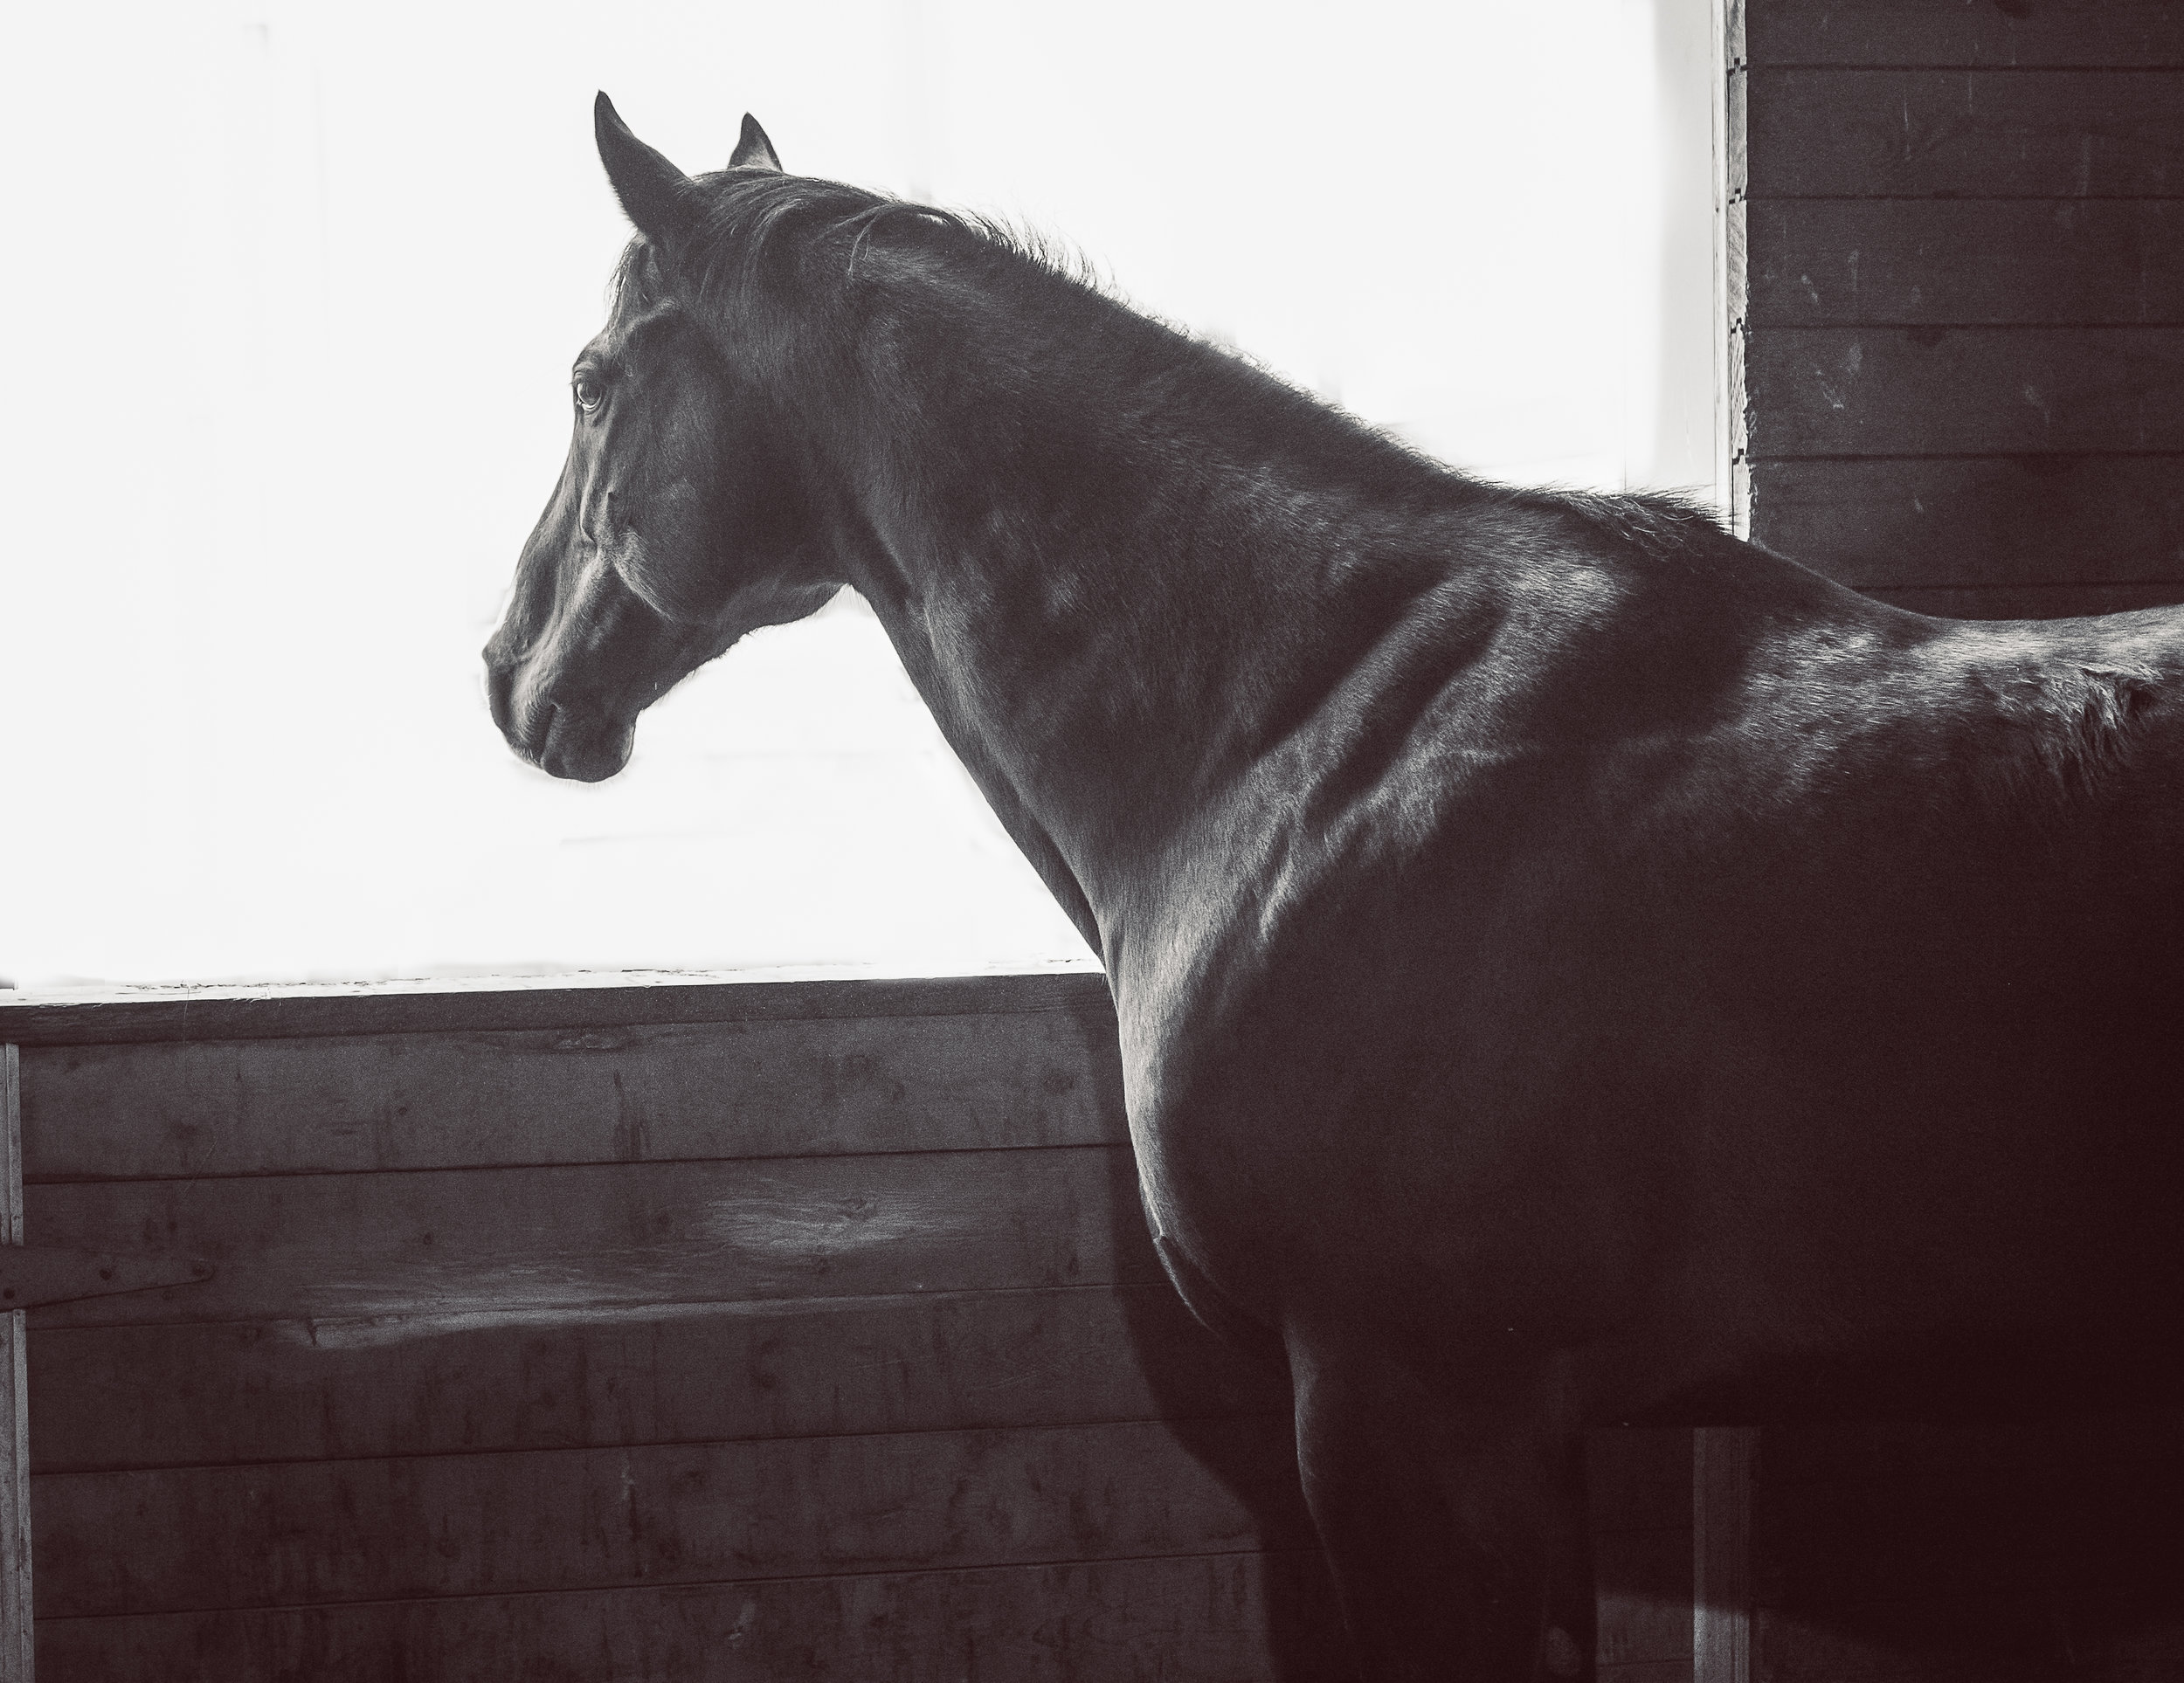 SOLITUDE  A rare moment of reflections and solitude for our star athlete and American Race Horse, Rocky.